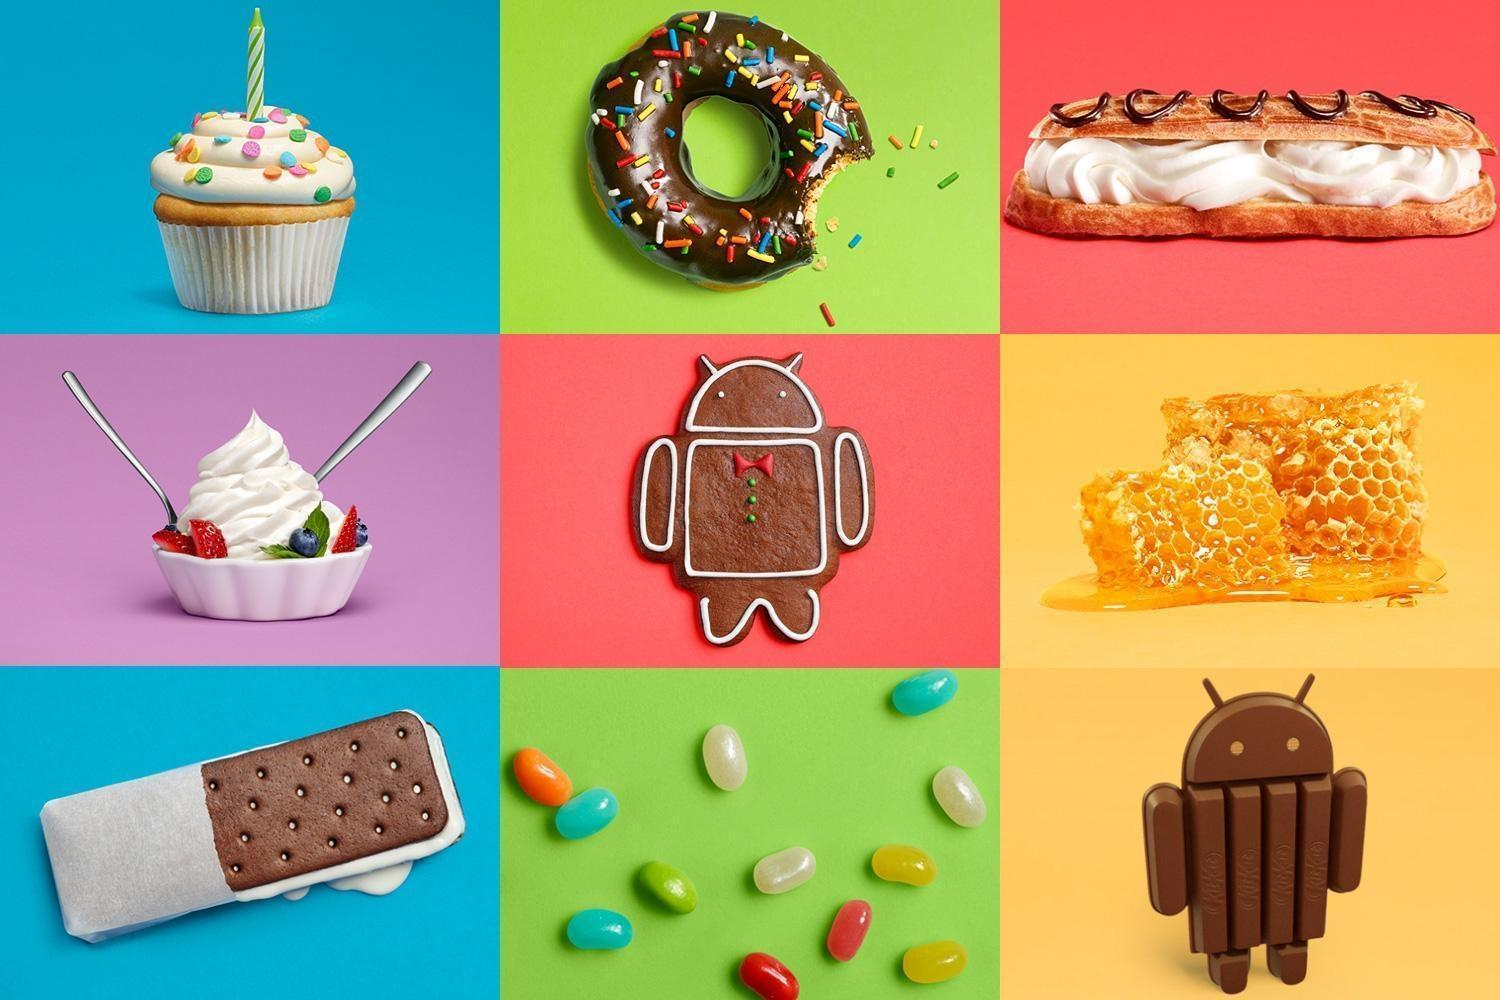 We noshed on Nougat, and Android 7 0 is Google's sweetest update yet